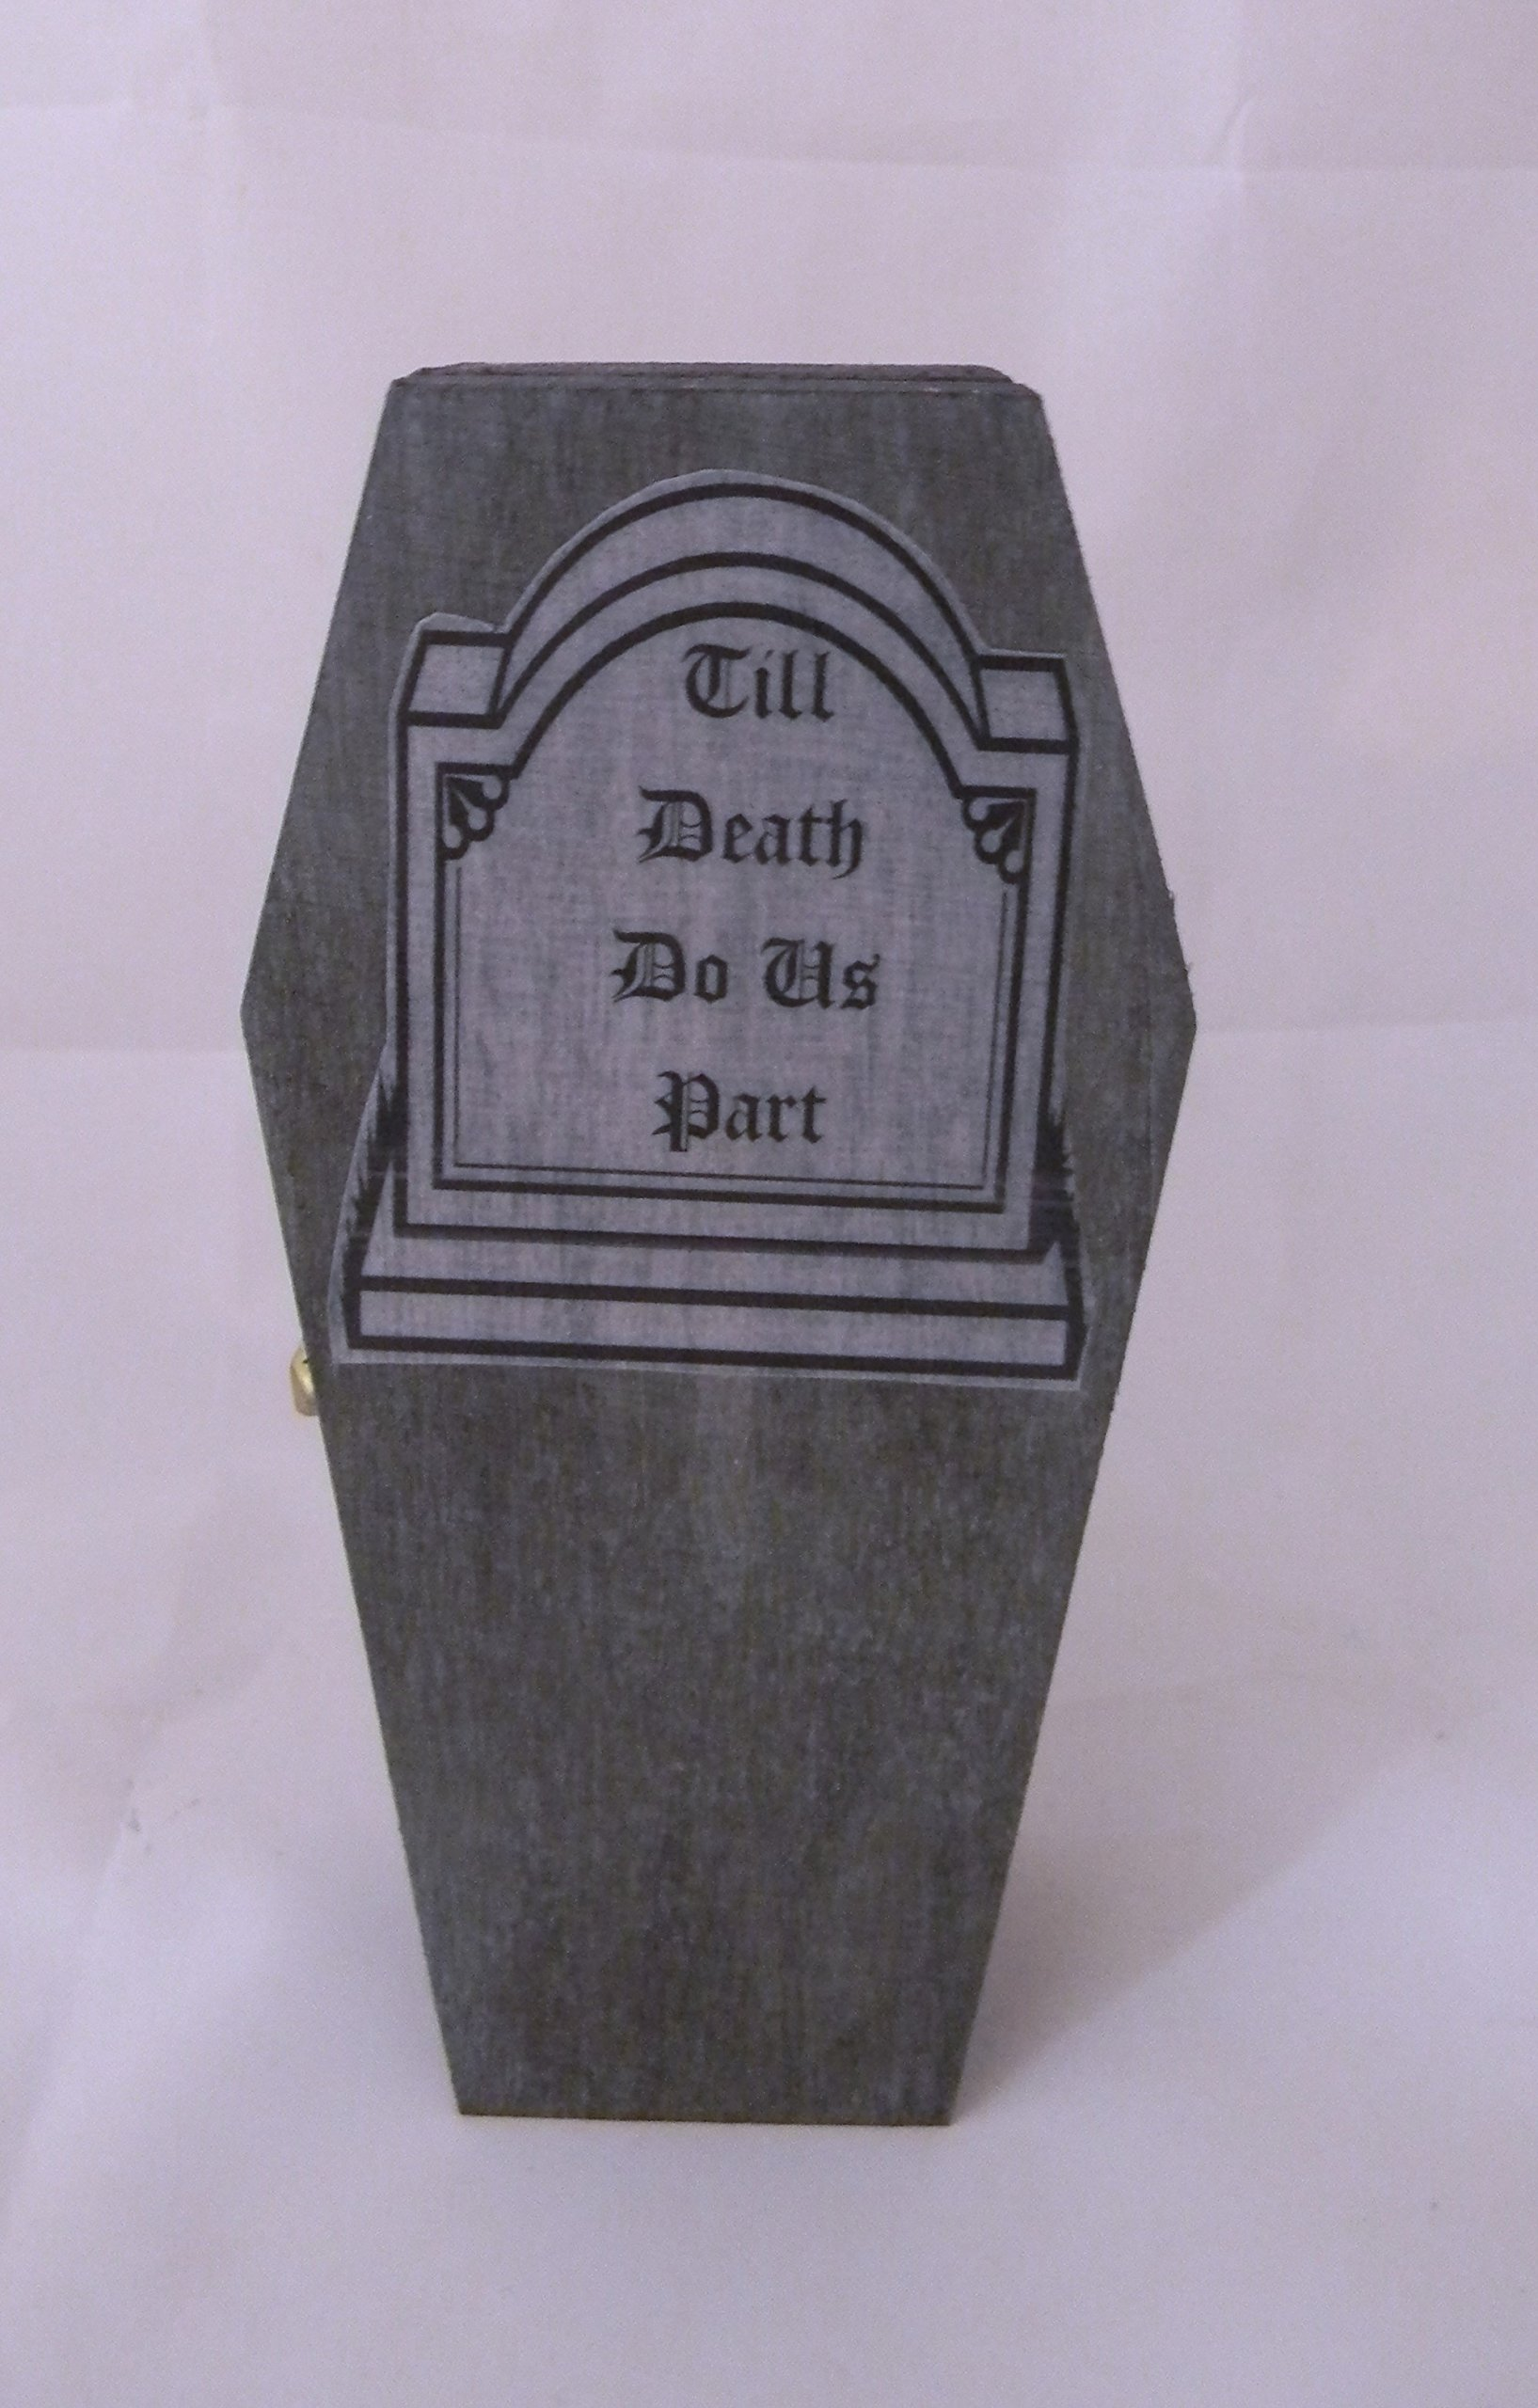 Wedding Party ceremony Gothic Wicca Coffin Tombstone ring bearer pillow Box by Custom Designed Wedding Supplies by Suzanne